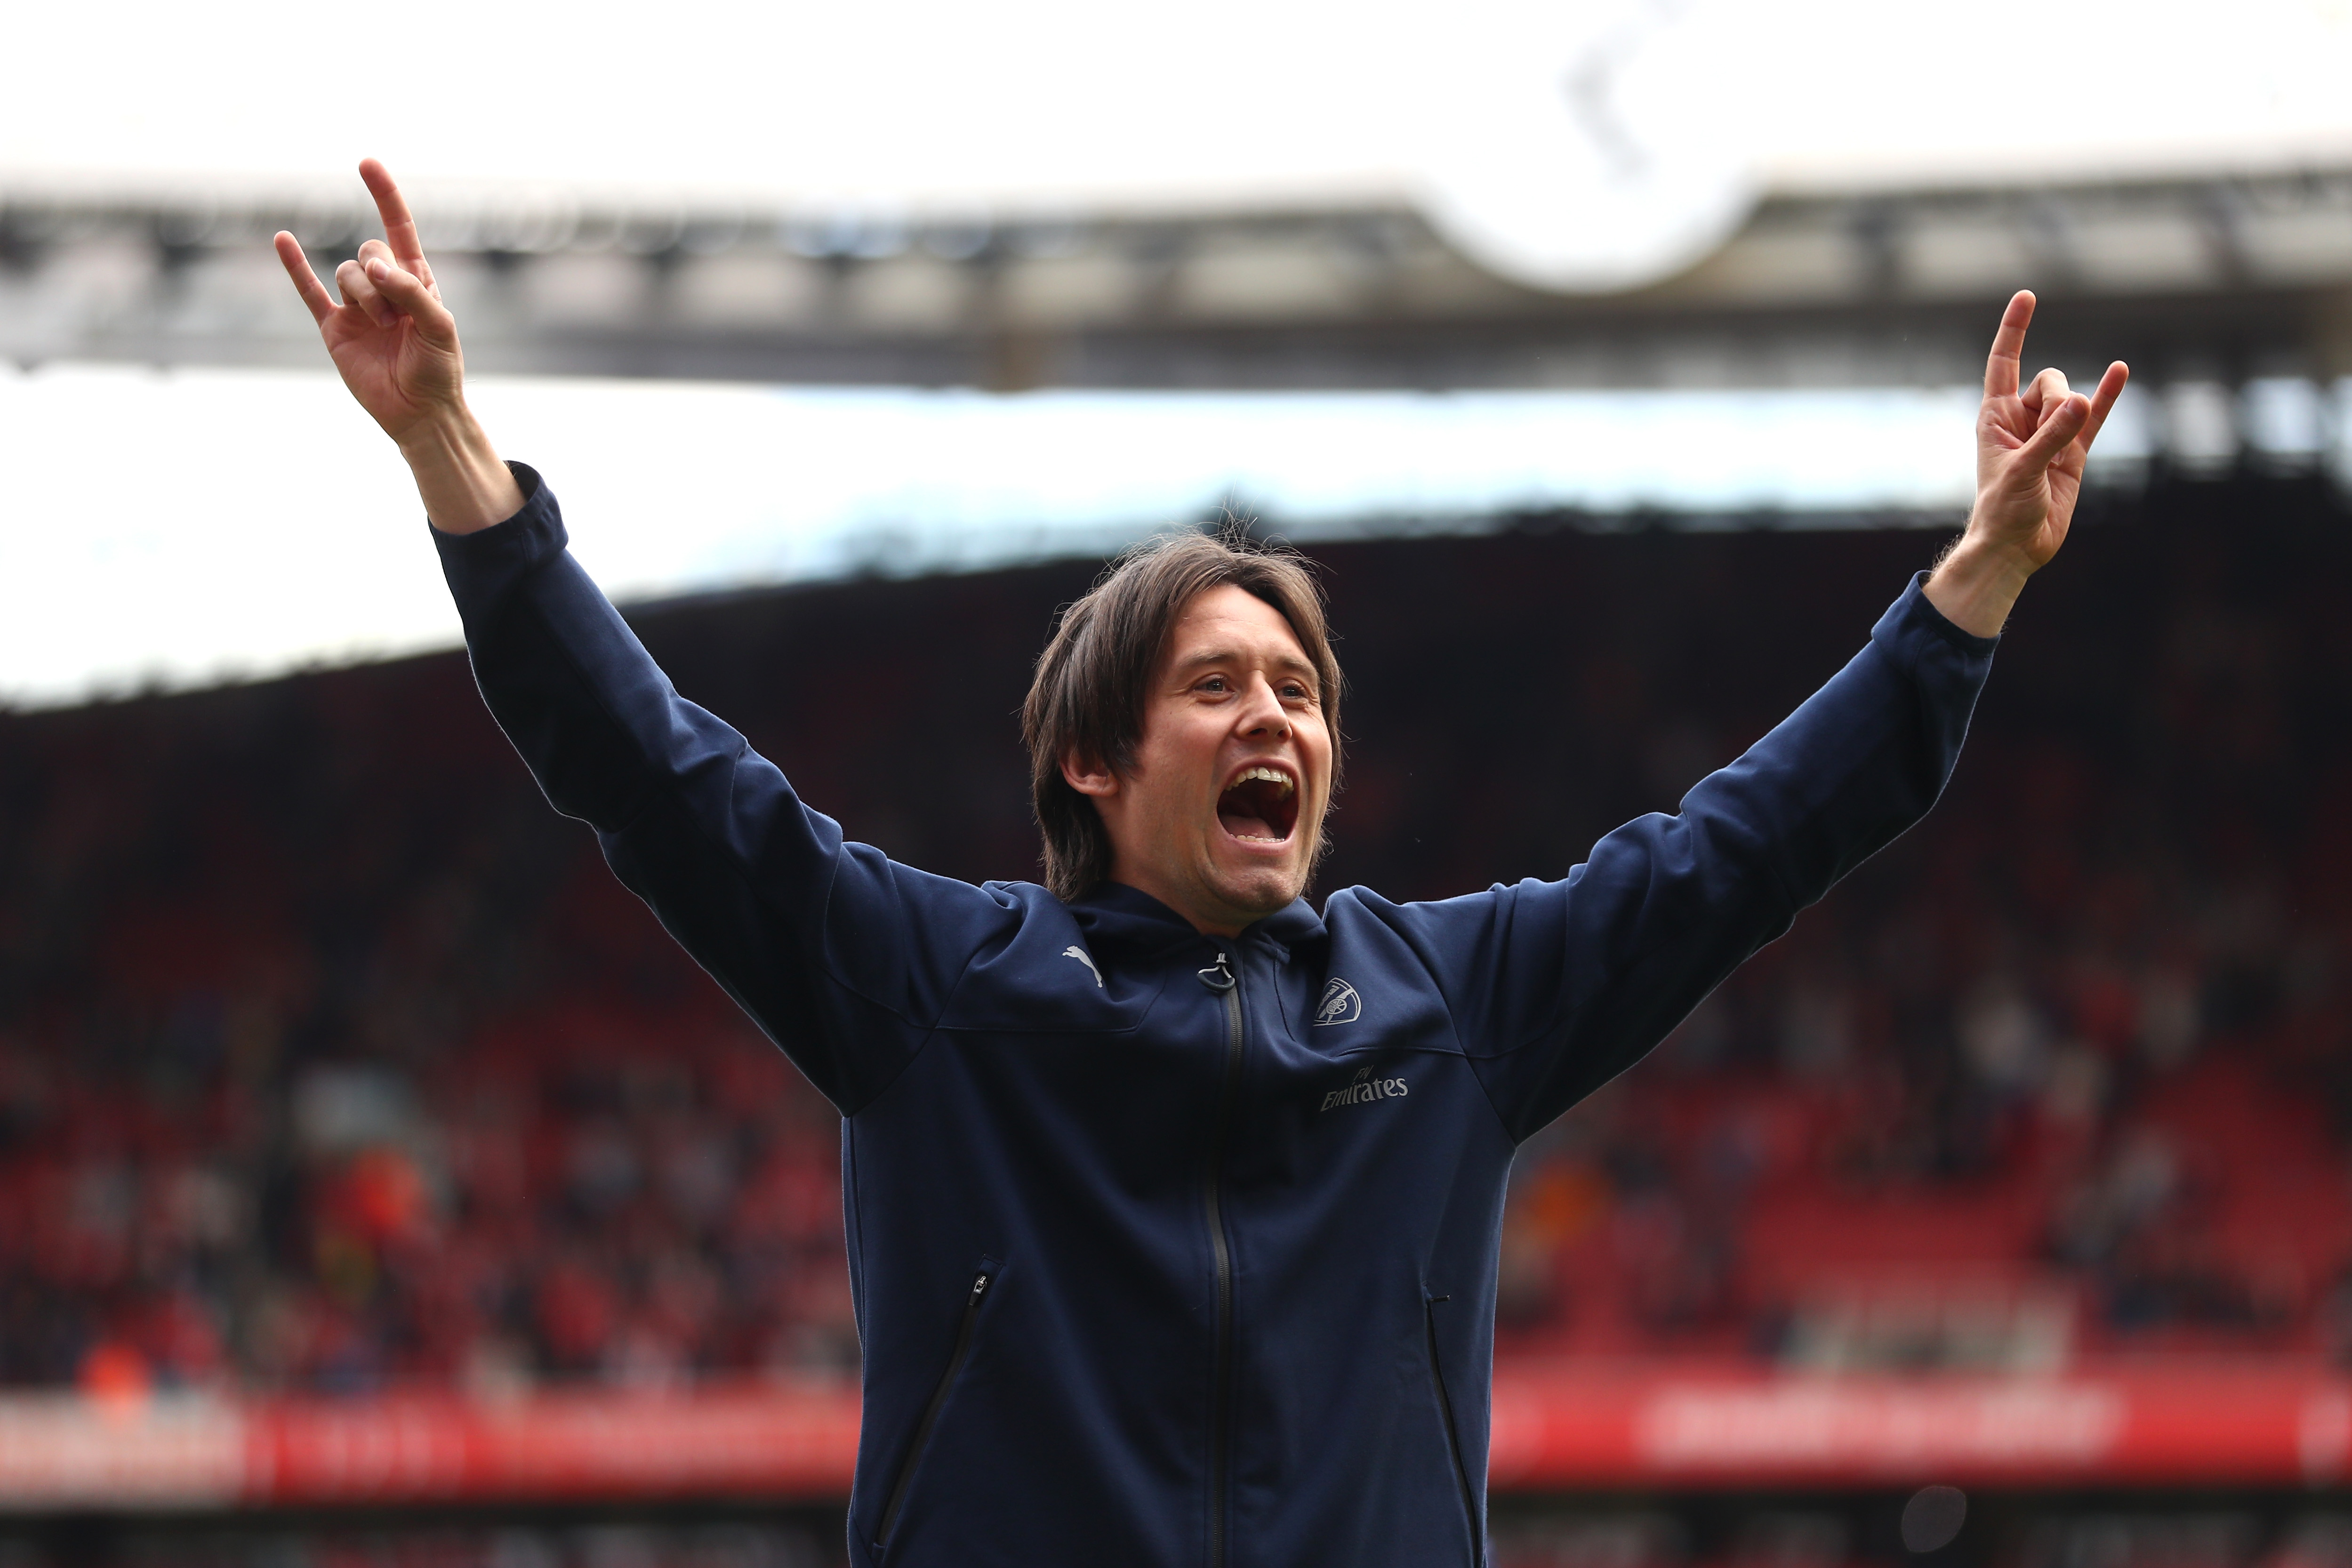 Arsenal hero Tomas Rosicky reveals Syrian boy's touching message which inspired comeback